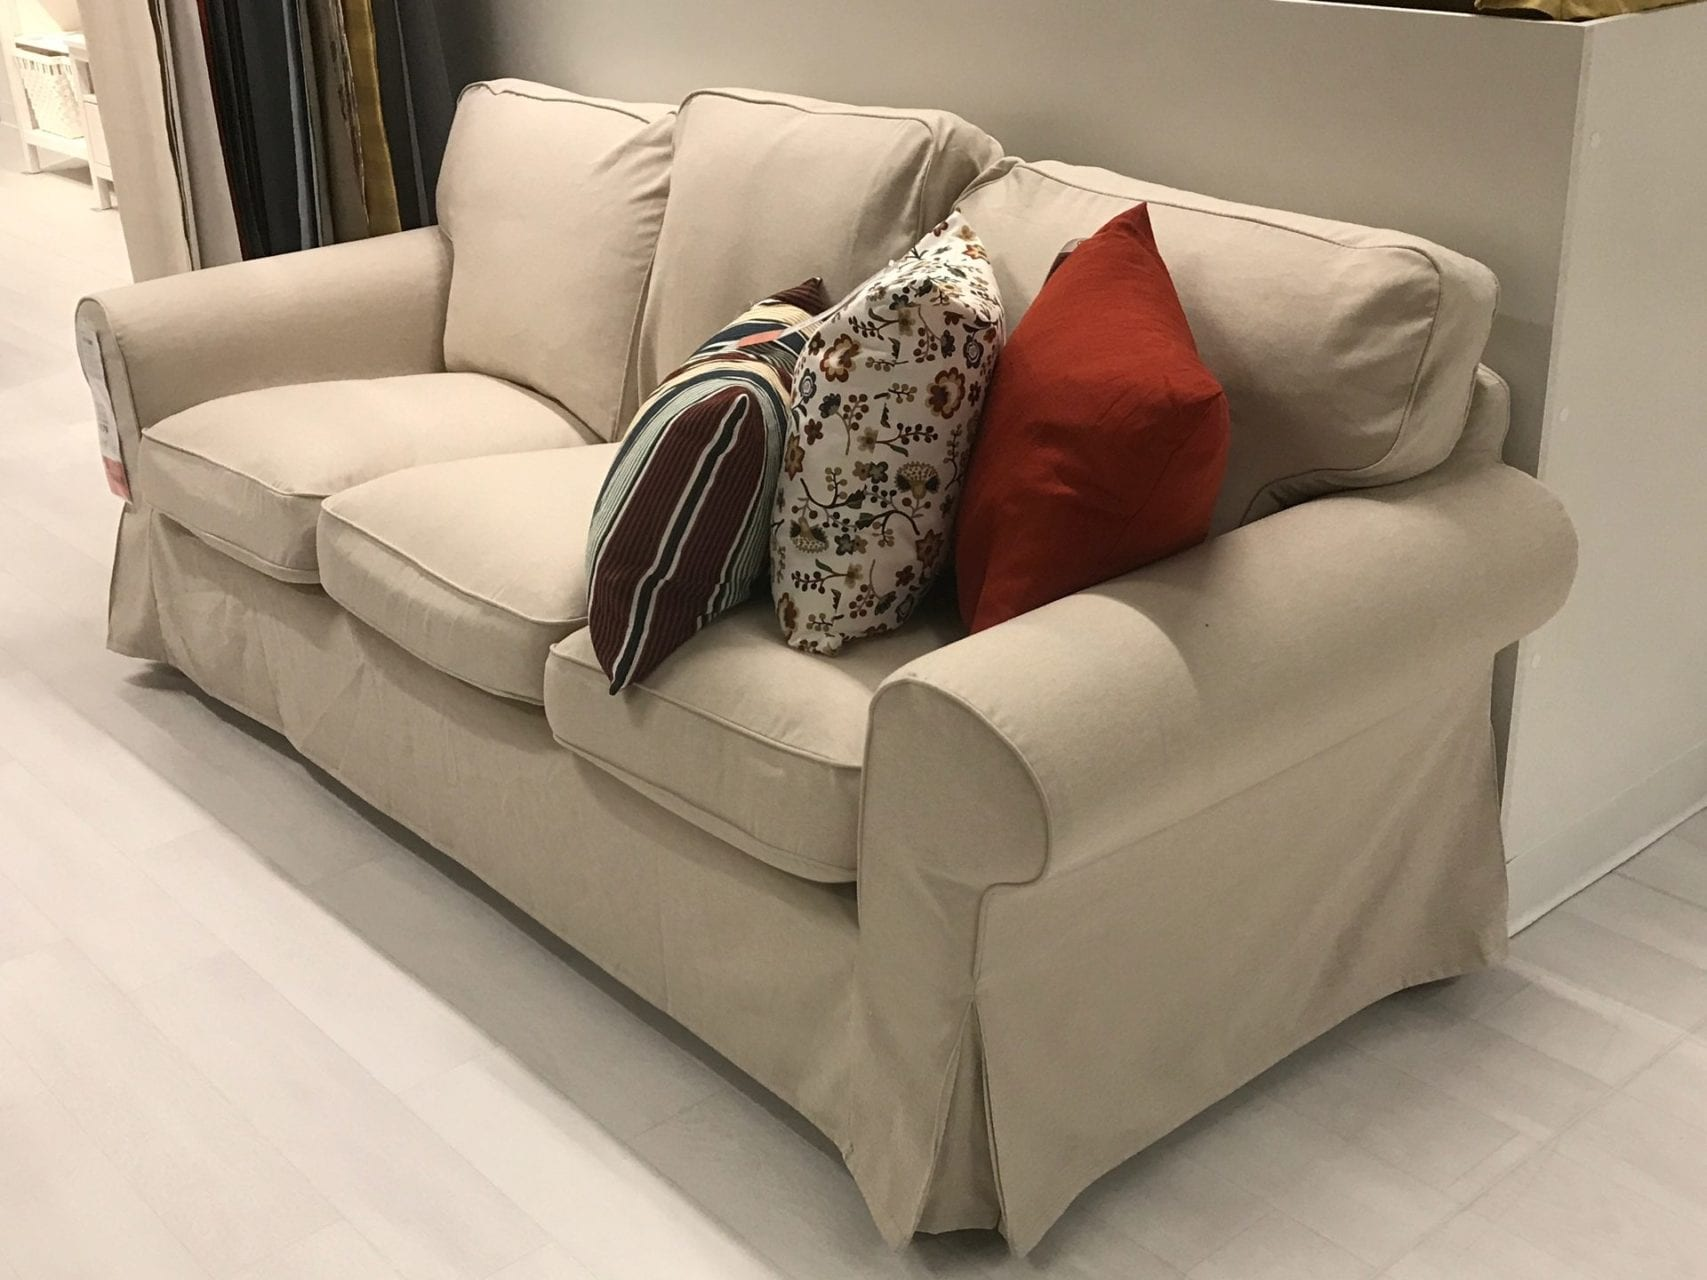 Free sofas give away free giveaway sofa bed canoga park for Ikea free couch giveaway